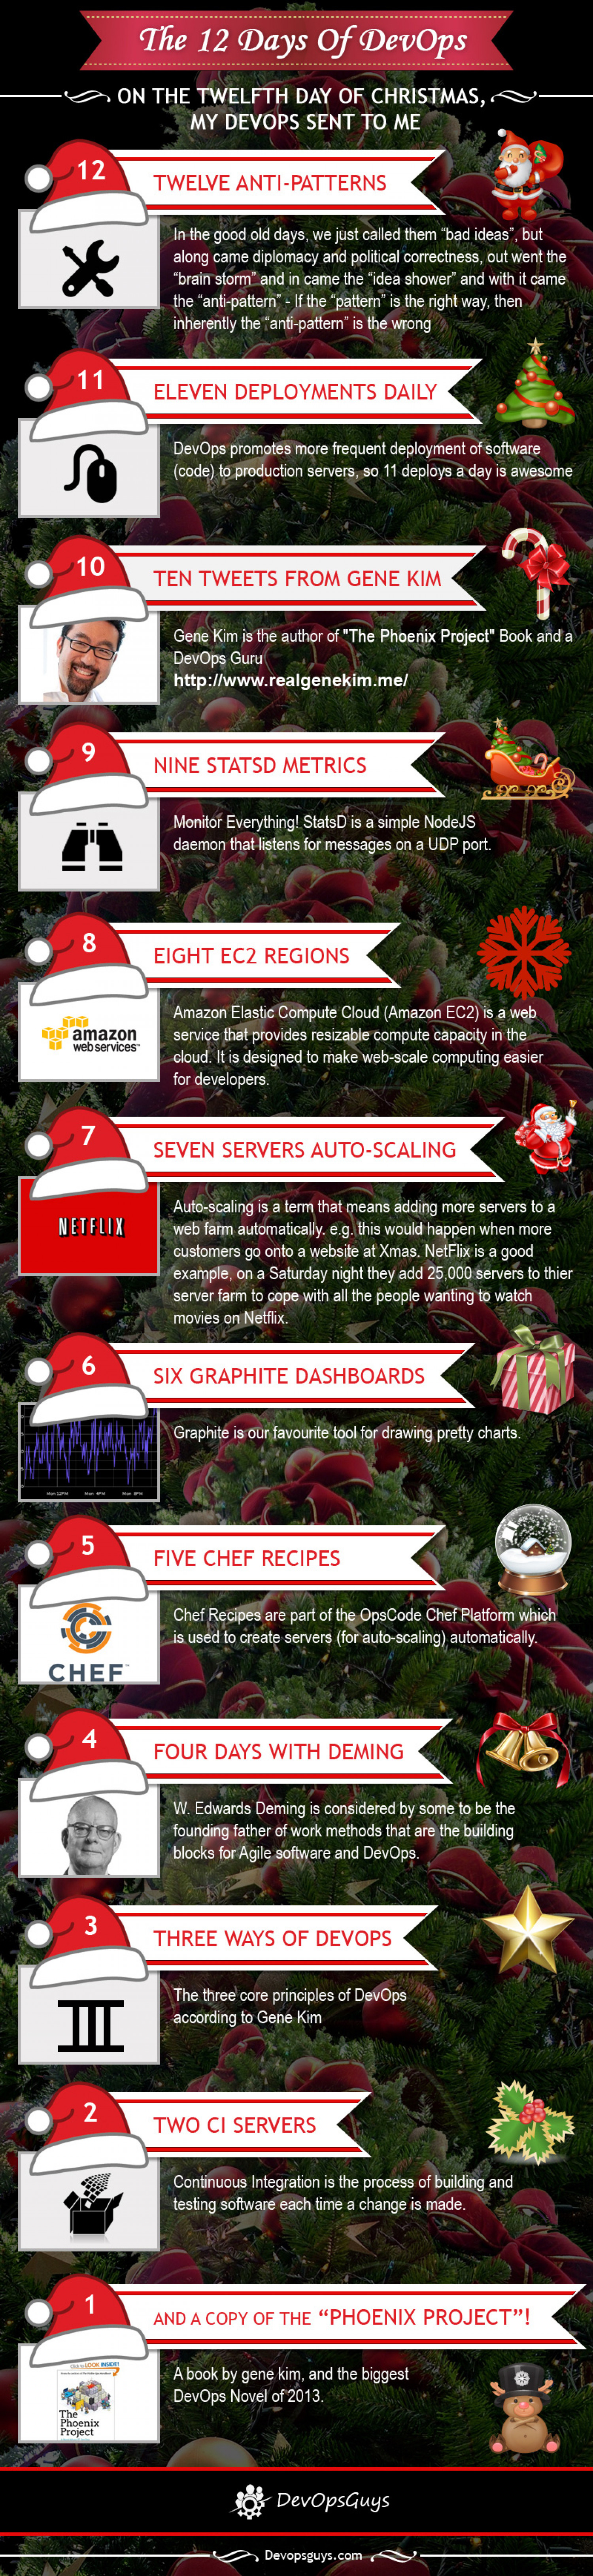 12 Days Of Dev Ops Infographic